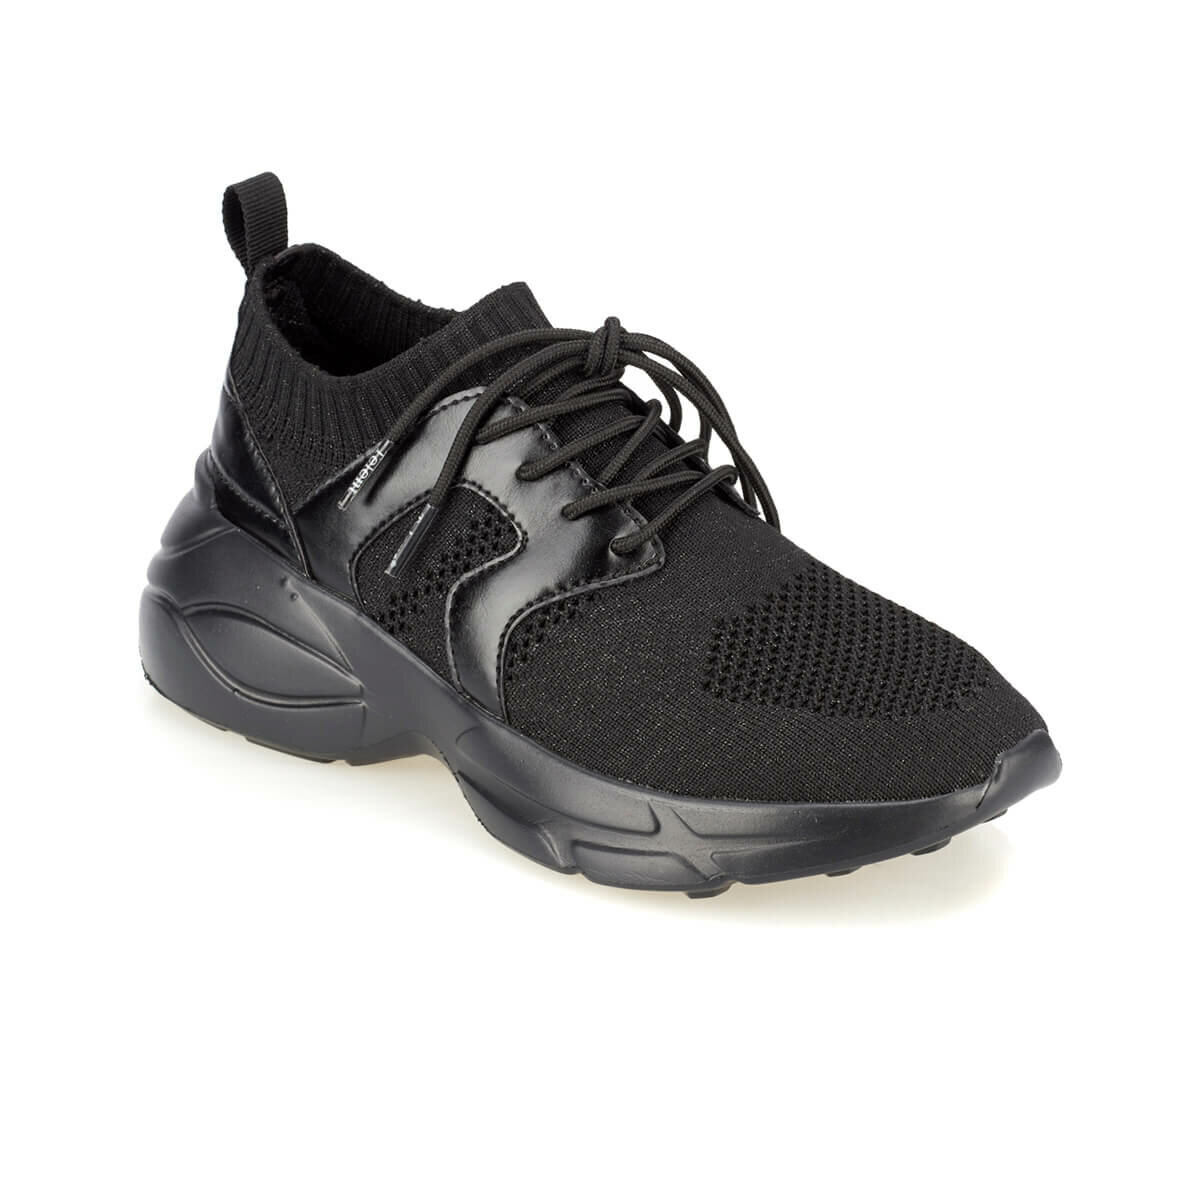 FLO ALEXIS Black Women 'S Sports Shoes KINETIX